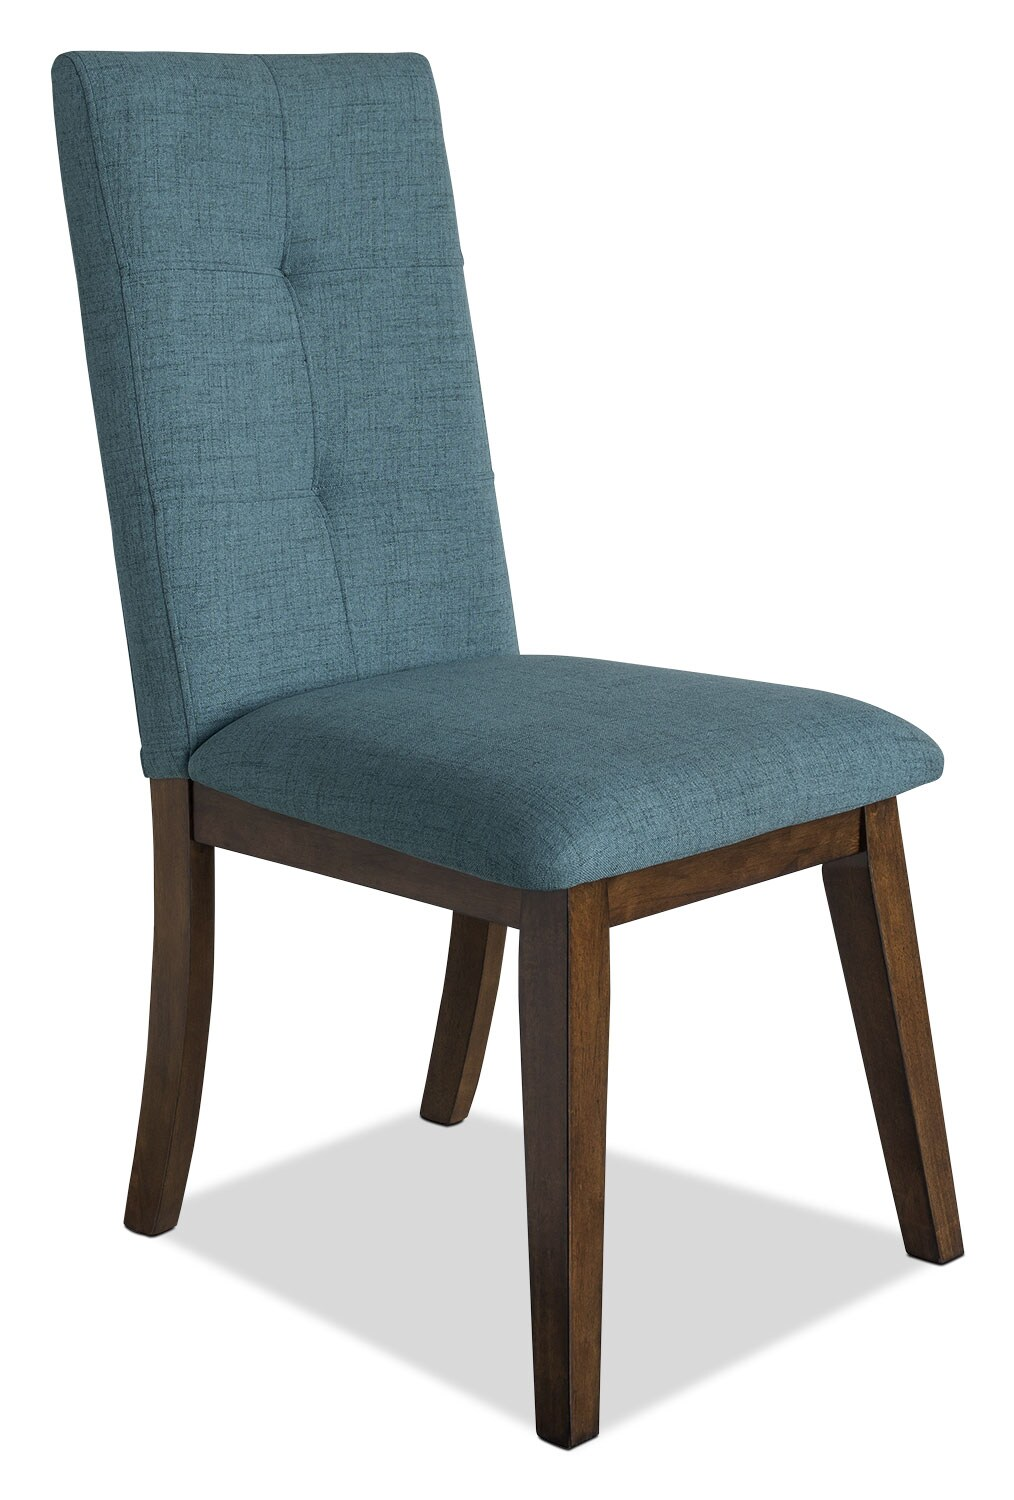 Chelsea Fabric Dining Chair – Aqua